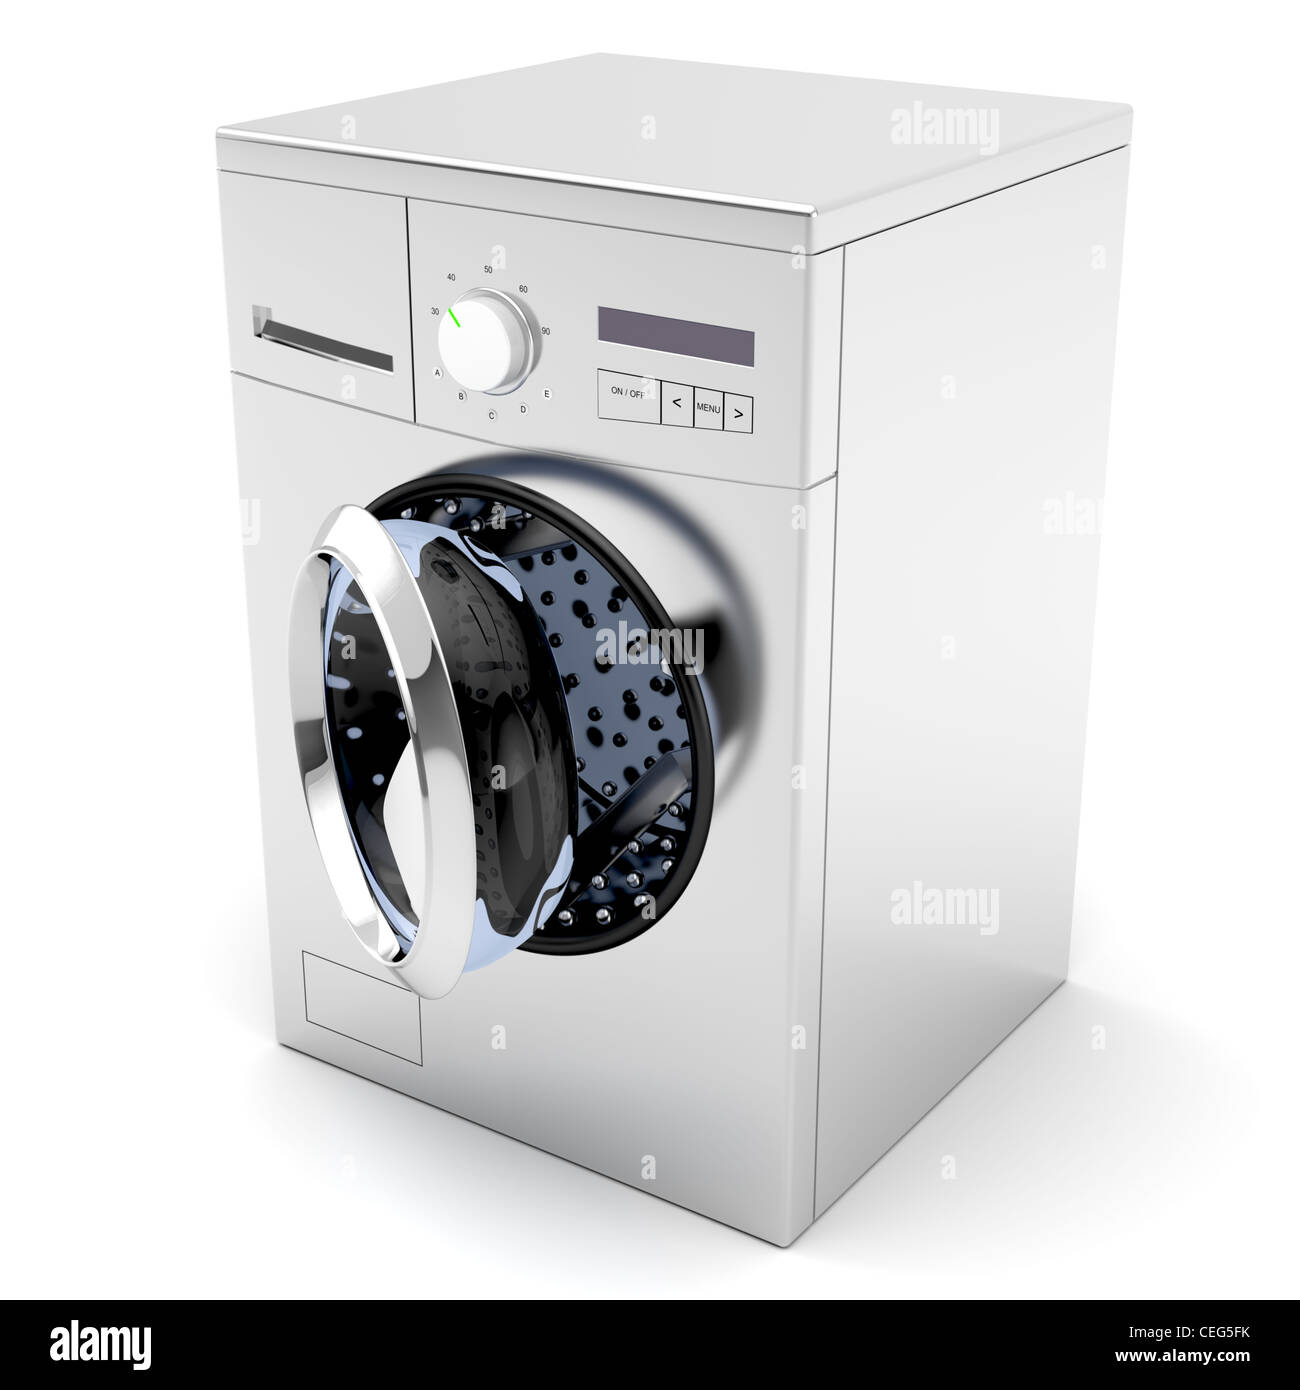 washing machine laundry water stock photos washing. Black Bedroom Furniture Sets. Home Design Ideas